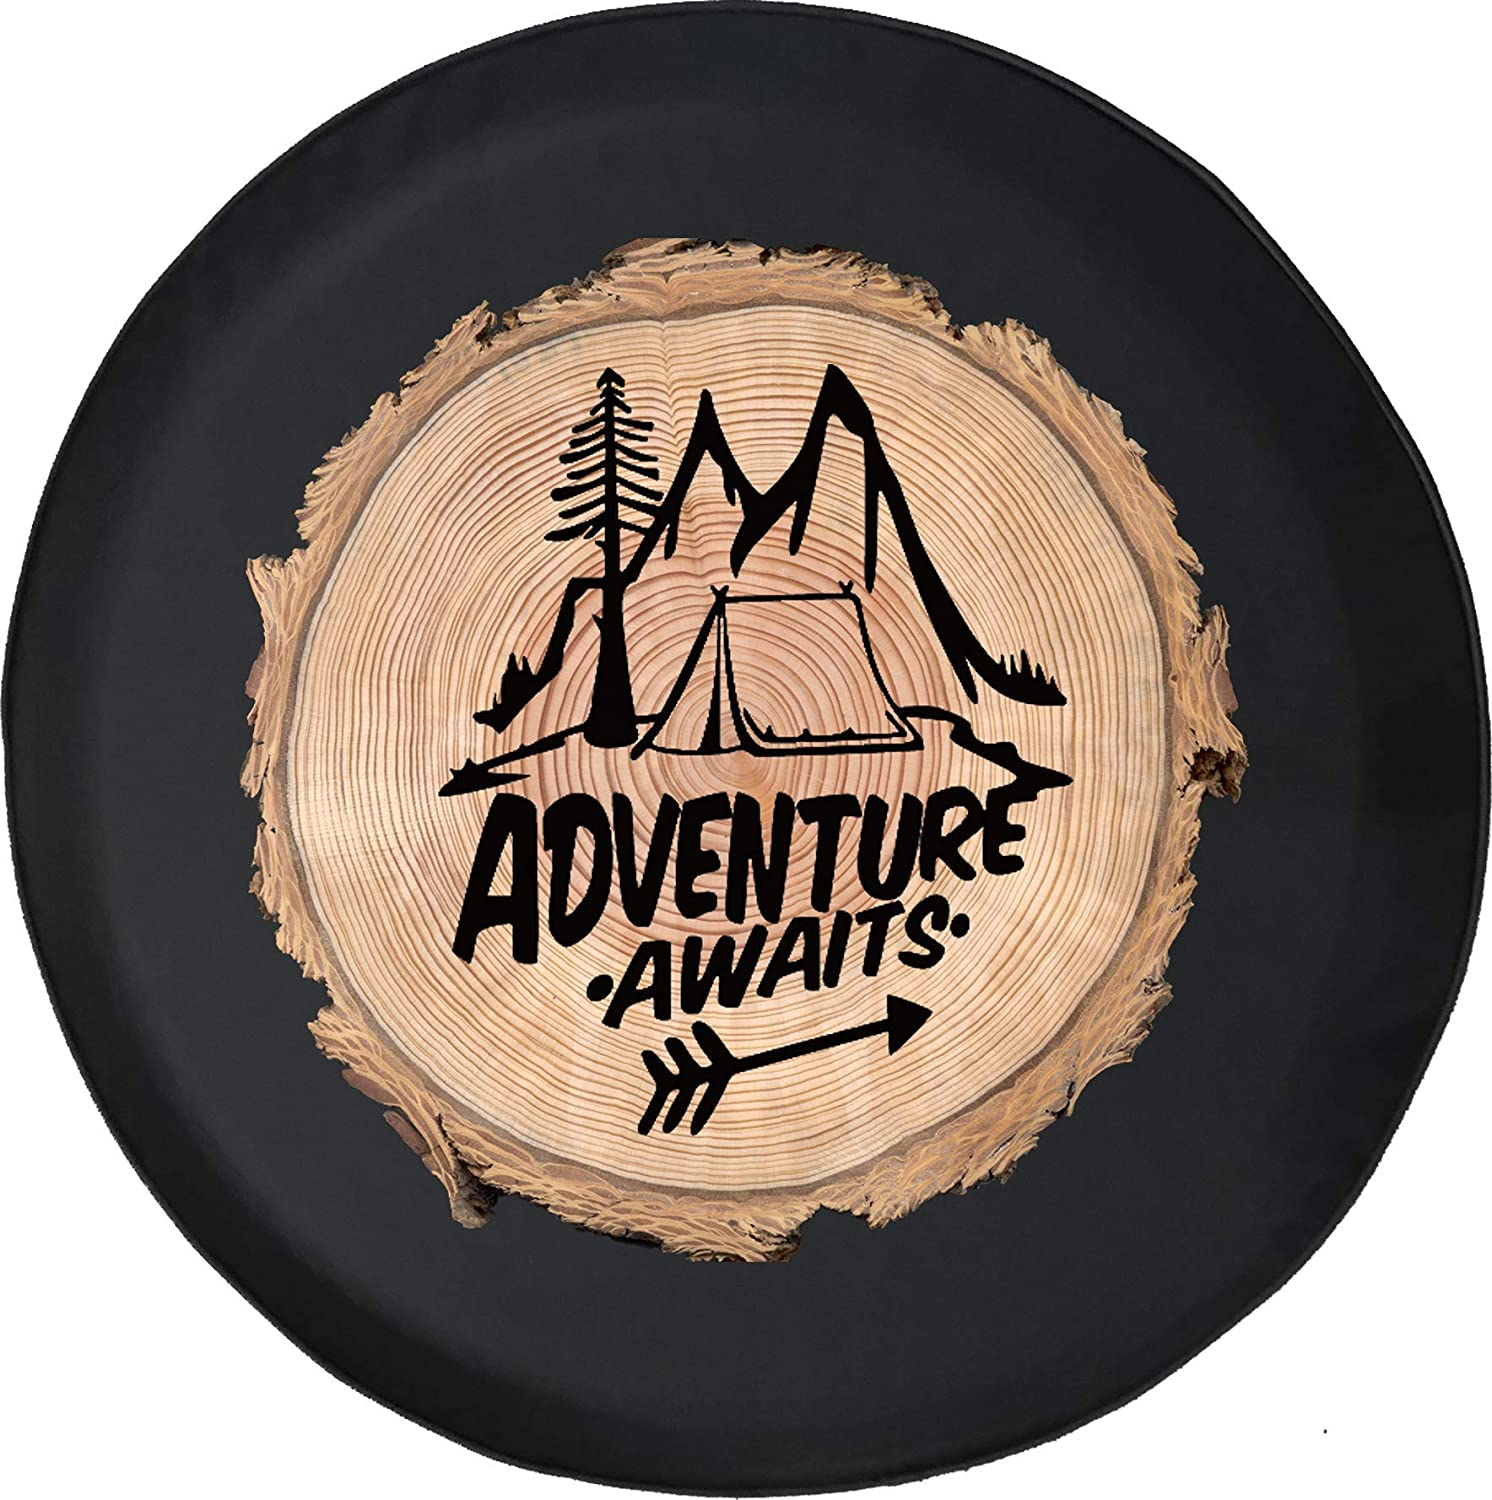 556 Gear Adventure Awaits Wood Series Log Camping Mountains Jeep RV Spare Tire Cover Black 33 in